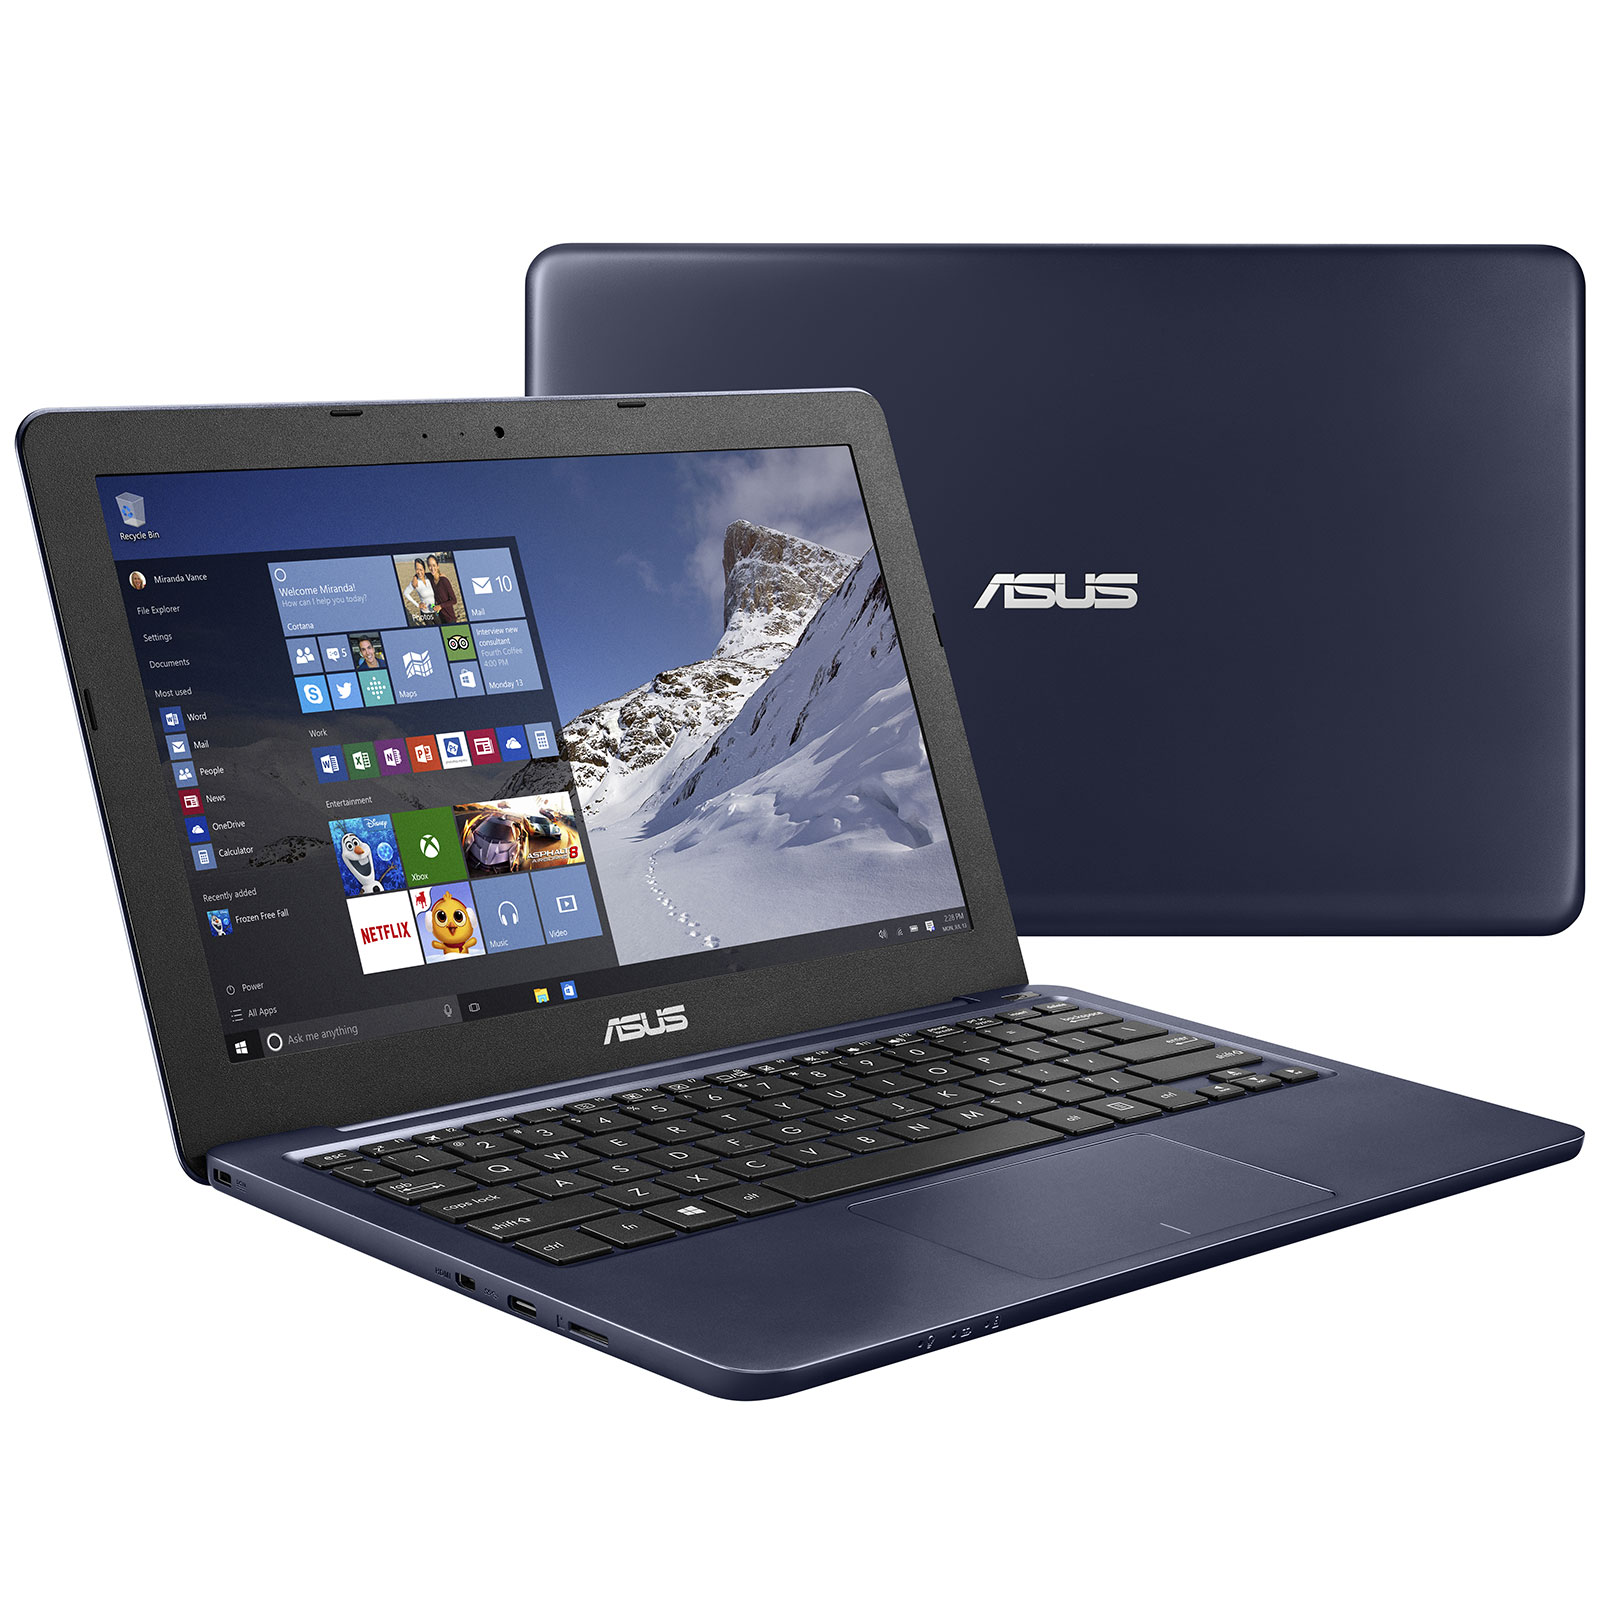 asus eeebook e202sa fd0013t pc portable asus sur ldlc. Black Bedroom Furniture Sets. Home Design Ideas